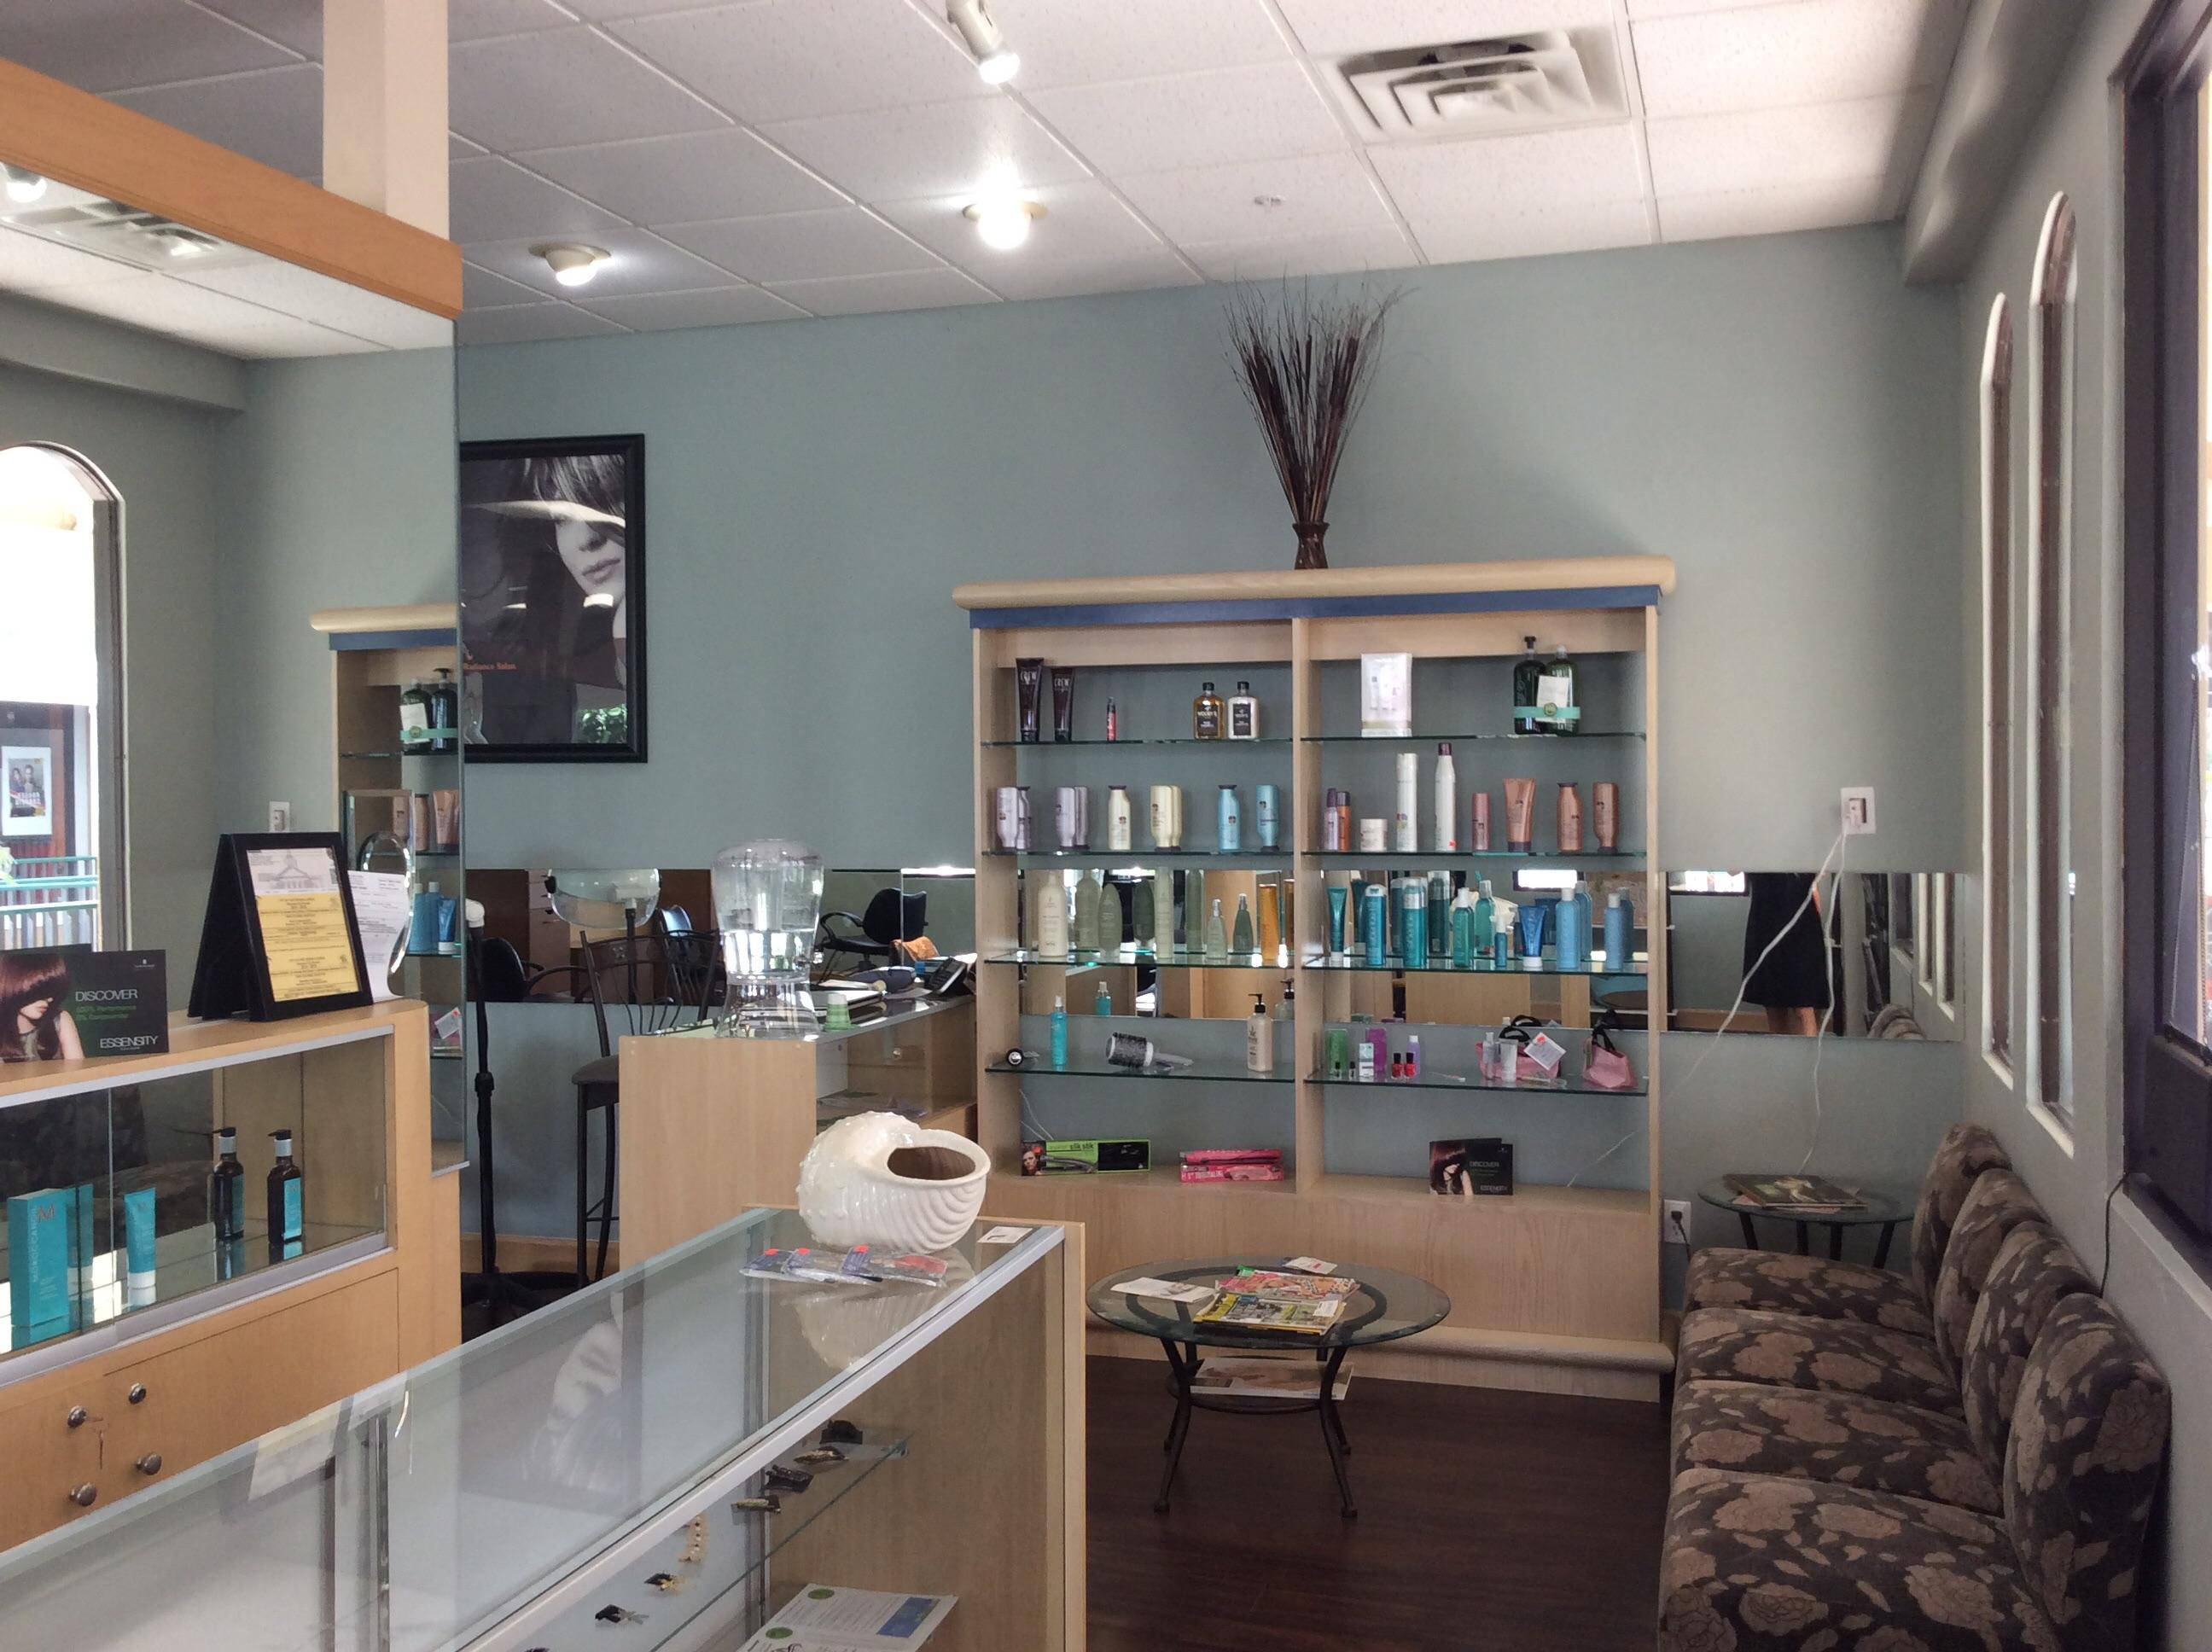 Radiance Salon image 1